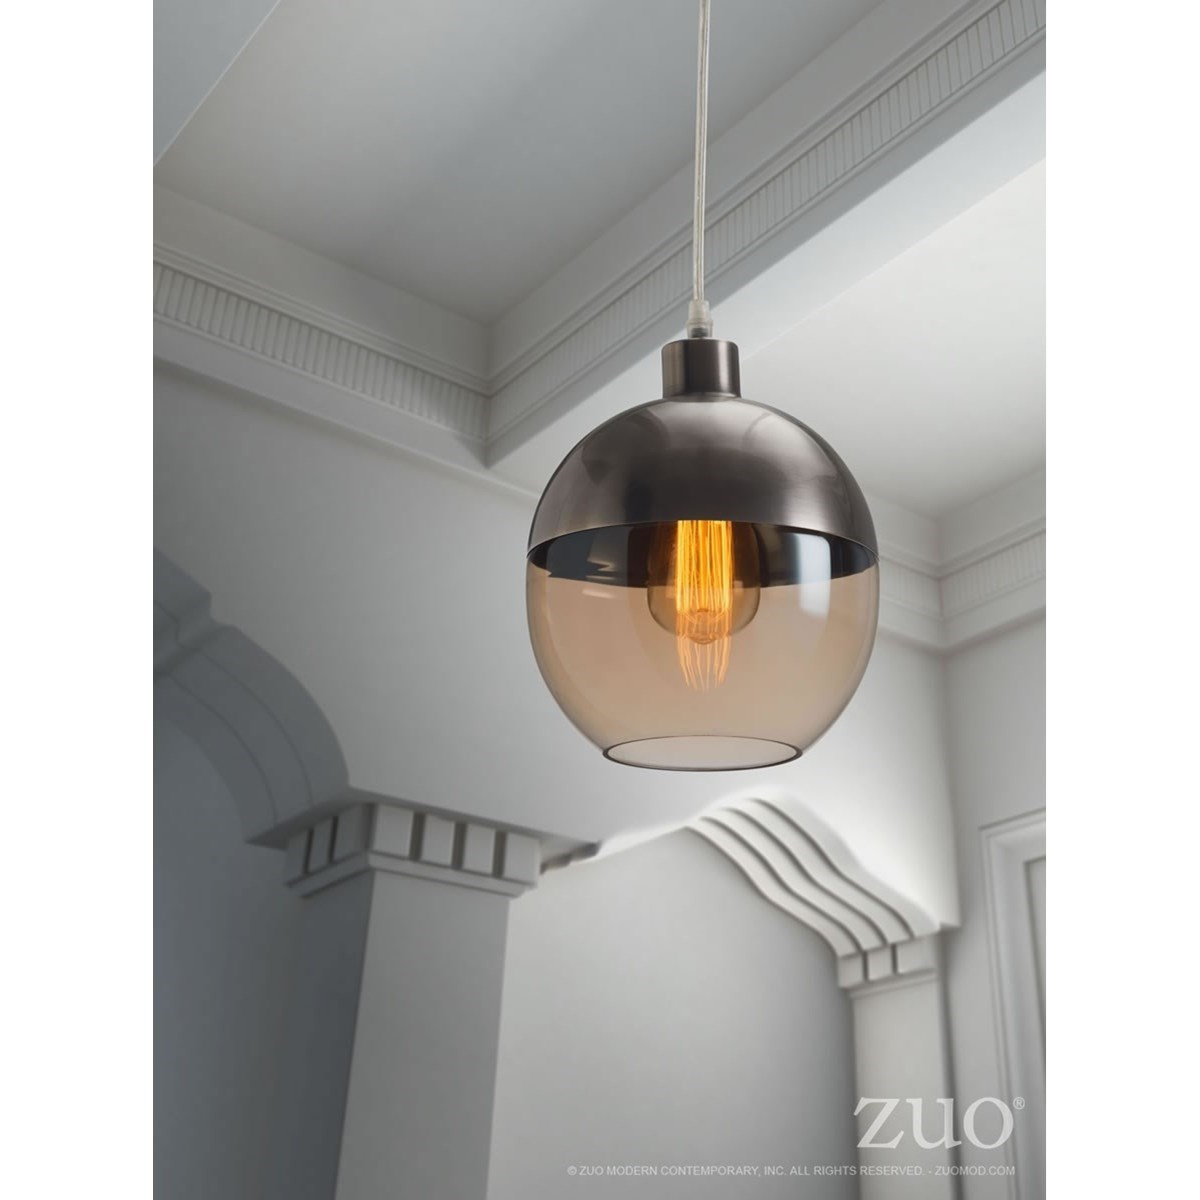 Lights Ceiling Pure Lighting Trente Ceiling Lamp By Zuo At Royal Furniture